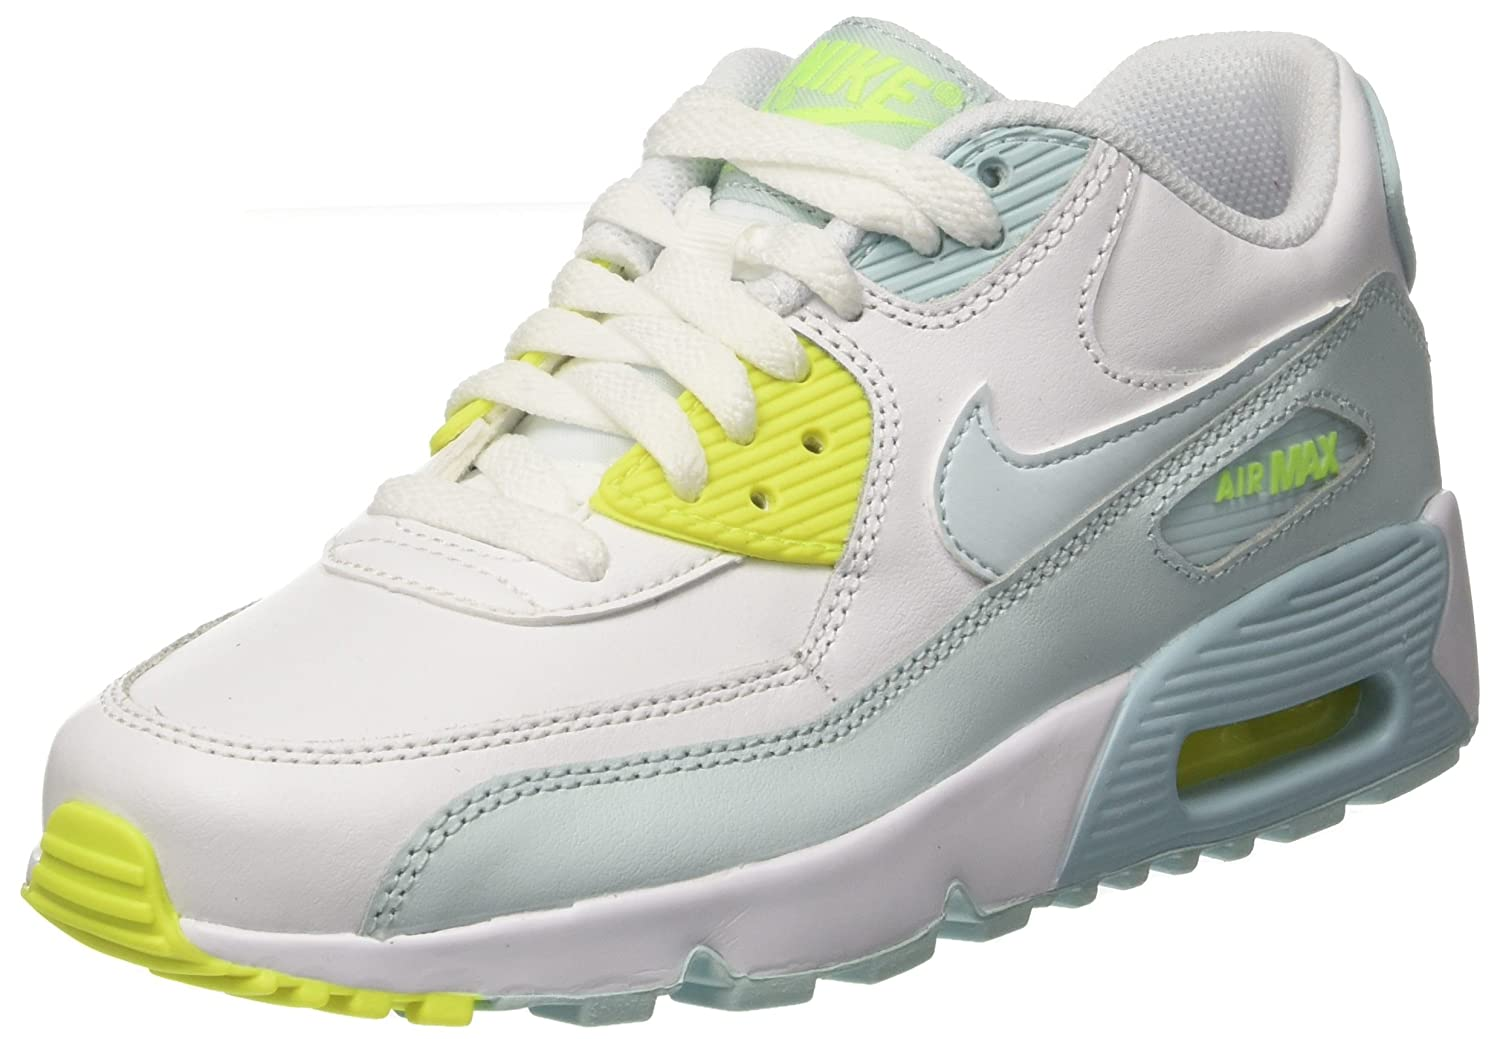 NIKE Youth Air Max 90 LTR Running Shoes WhiteBlue